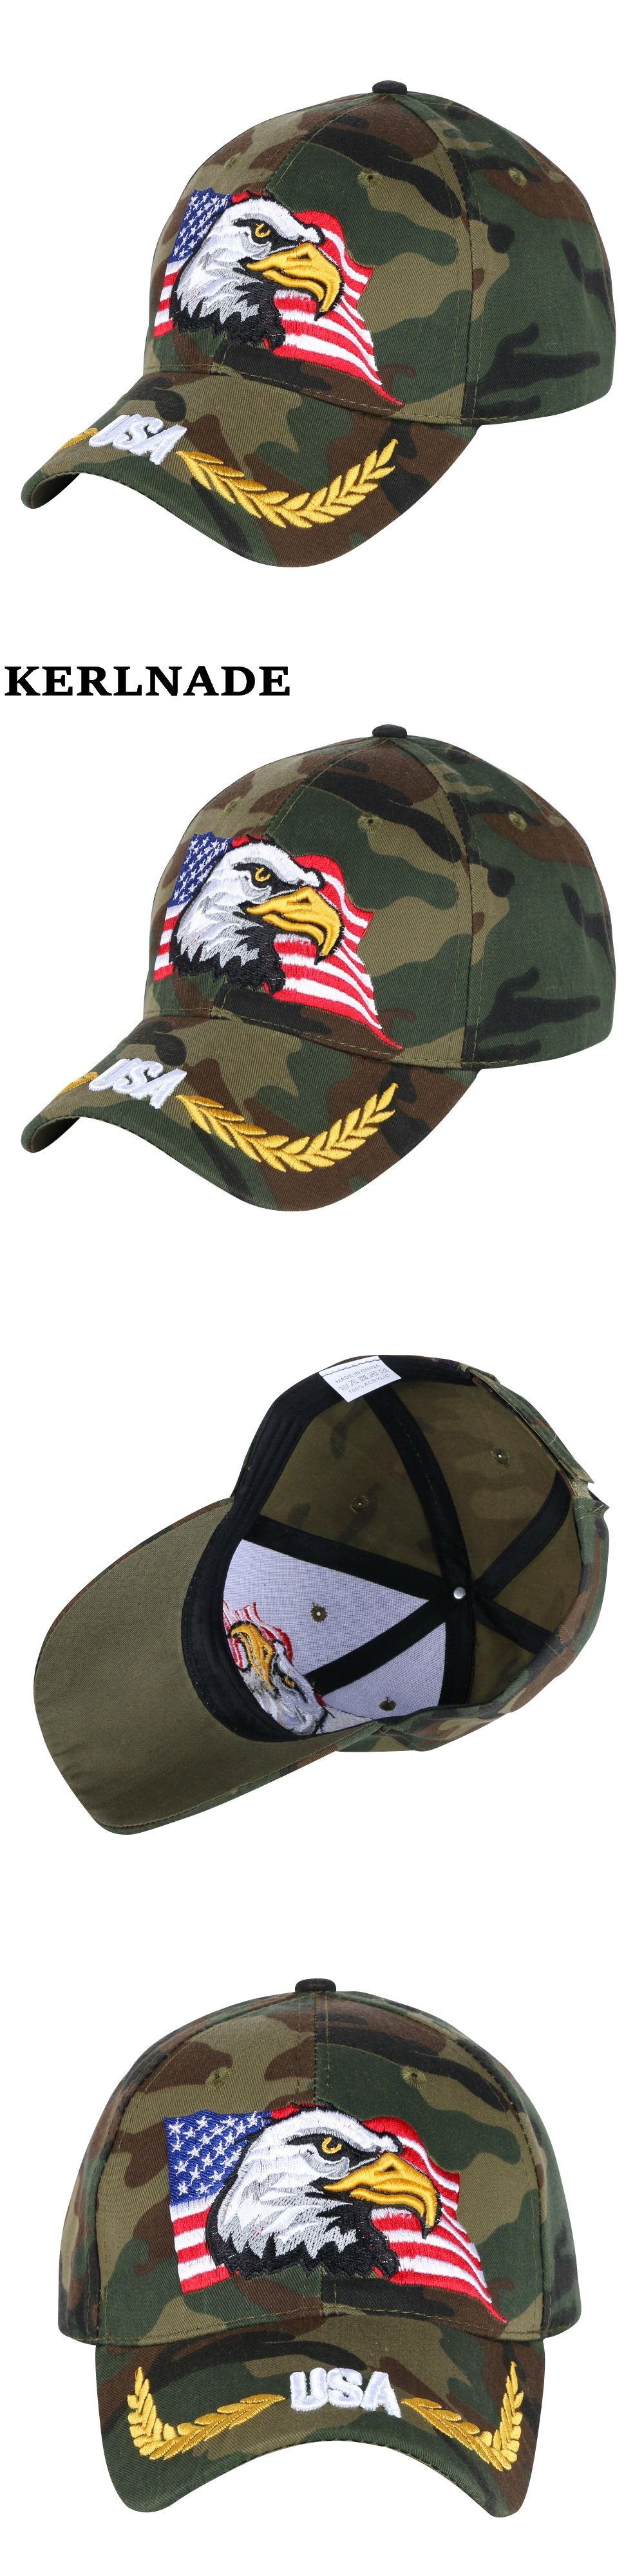 858fee88 men boy brand baseball cap customized design eagle character embroidery  camouflage style novelty snapback hats women